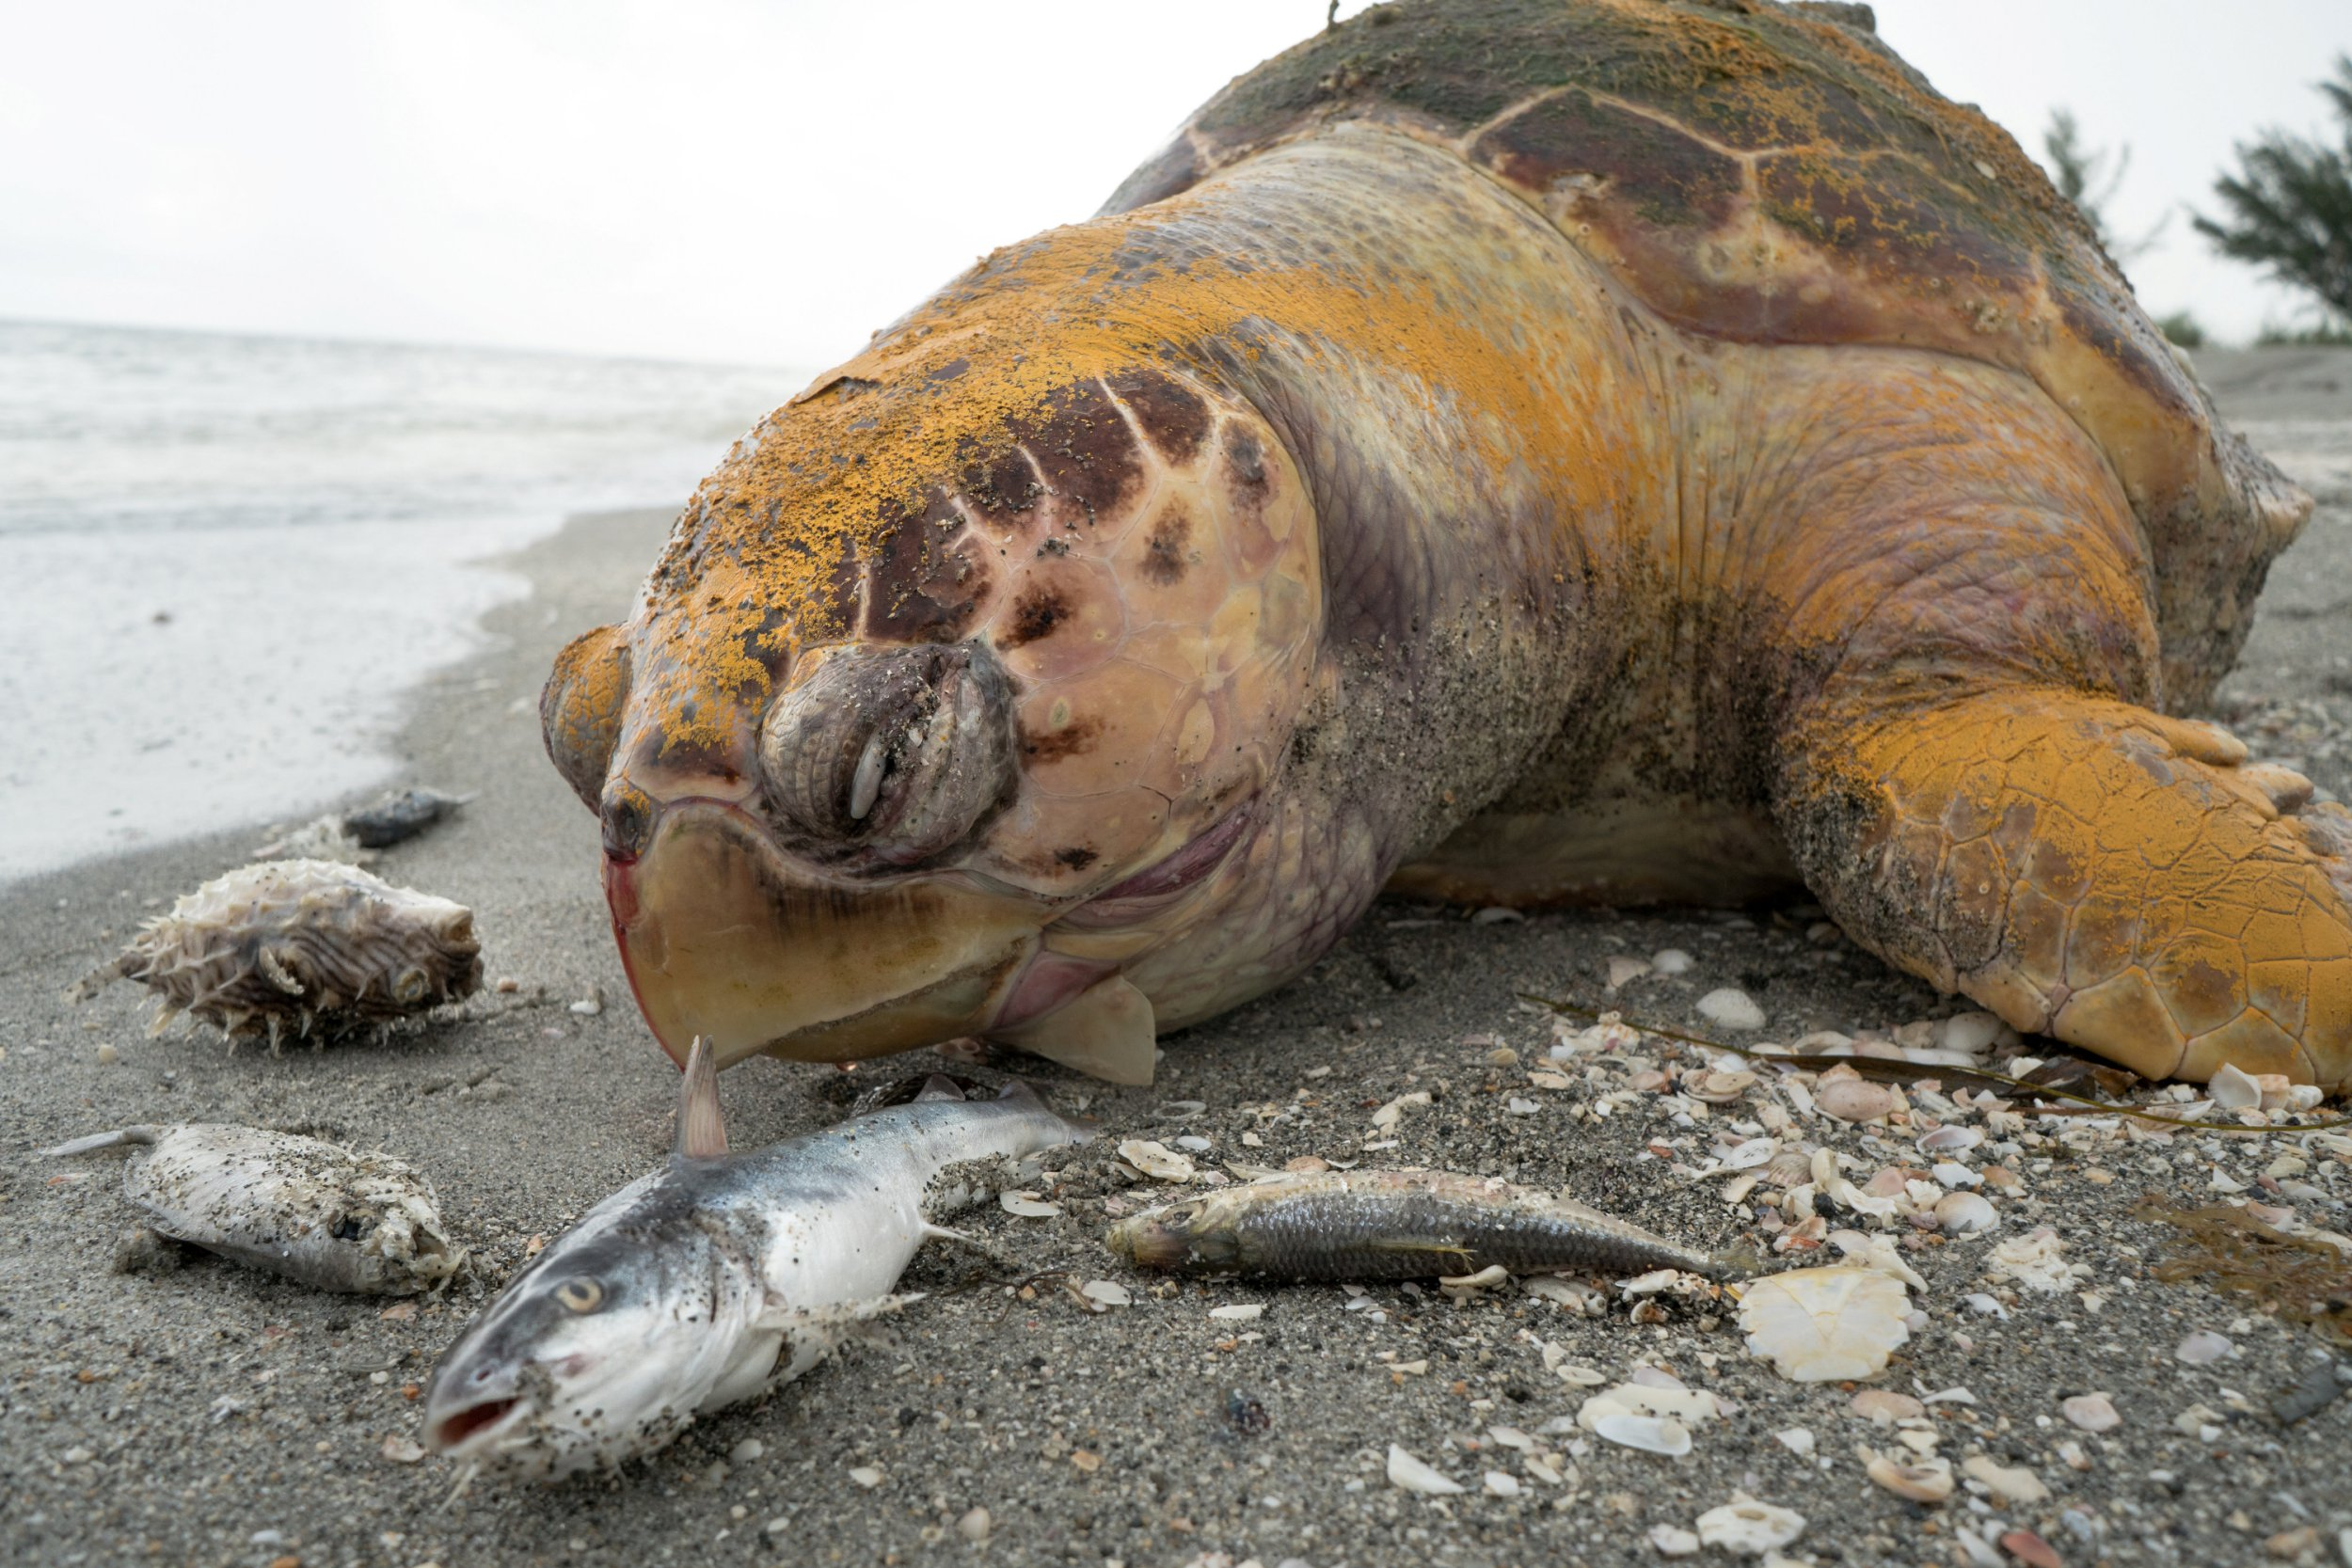 """These devastating videos show the corpses of sea turtles, manatees, dolphins and fish who perished on Florida???s coasts this week as a result of ongoing pollution. See SWNS story NYDEAD; The shocking devastation of wildlife is being caused by a red tide event, a blooming of algae which is worsened by sewerage and fertilizer pollution from super farms. The upsetting footage was captured by Ivy Yin, a videographer with Our Children???s Earth Foundation, who traveled to various beaches along Florida???s coast on July 30 and 31. The videographer captured footage of a dead endangered loggerhead turtle in Captiva, a lifeless manatee floating motionless in the water in Cape Coral and thousands of fish who perished in the ocean because of the algal bloom. Dr. Richard Bartleson, research scientist with Sanibel-Captiva Conservation Foundation, said: """"This red tide event has been prolonged by human activities such as farming, development and manufacturing. ???Over the past number of years, the build up of chemicals such as phosphorus and nitrogen, among other elements typically found in fertilizer have provided the perfect nutrients to worsen the bloom.??? The algal bloom is also impacting the turtle population, who are currently in the middle of their hatching season Heather Barron, head of the Center for the Rehabilitation of Wildlife Veterinarian Hospital on Sanibel, says the red tide outbreak has collided with the height of sea turtle reproduction."""